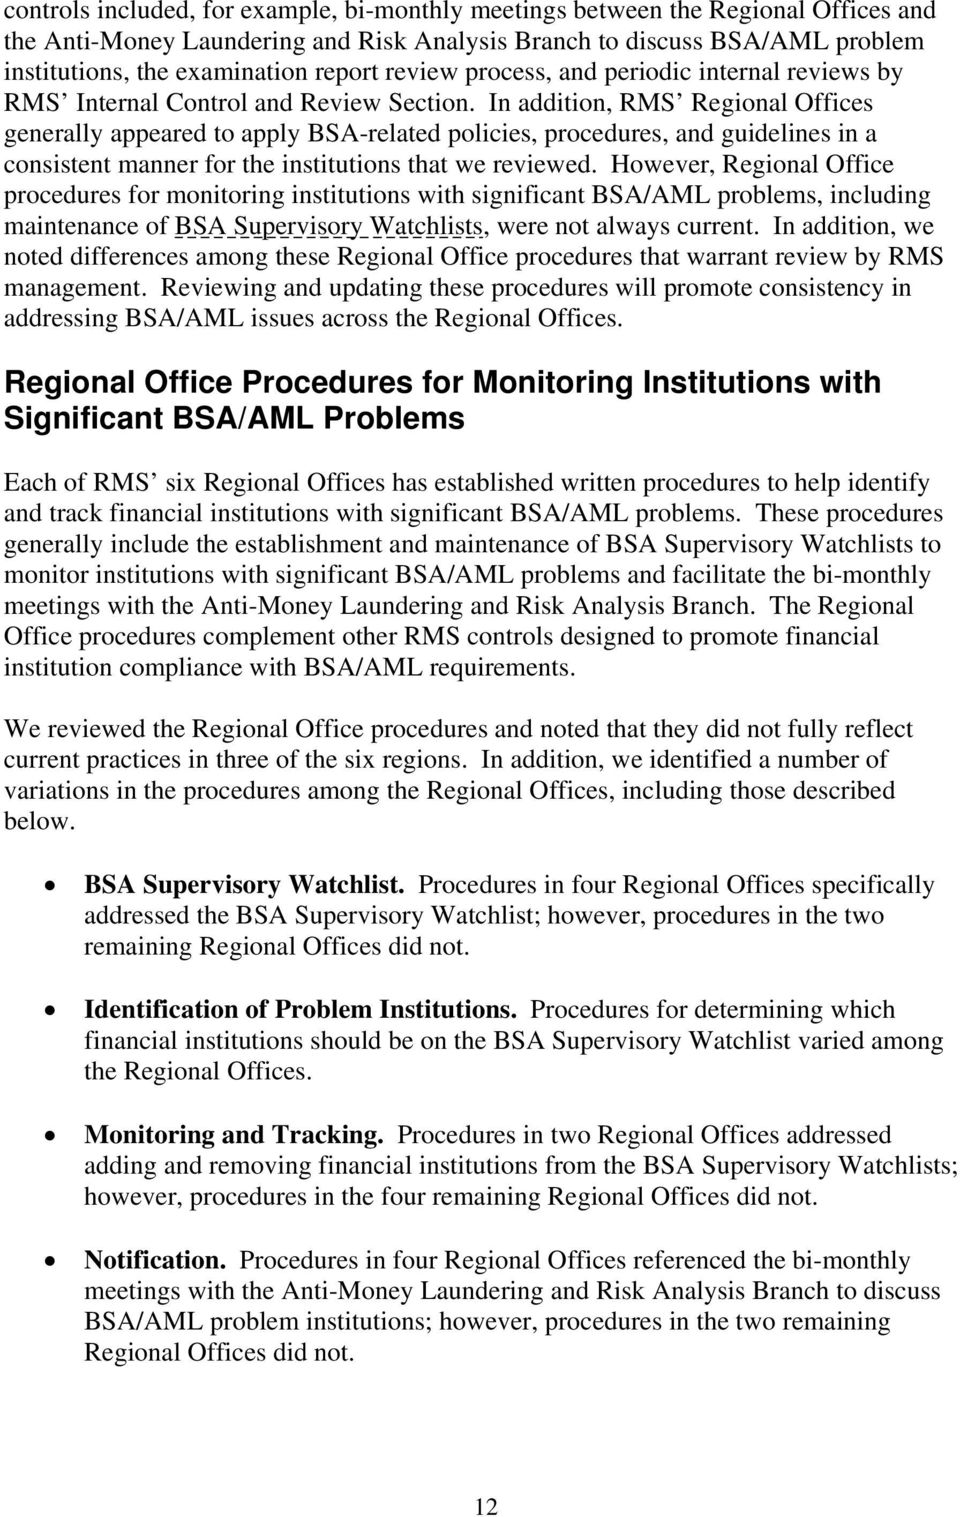 In addition, RMS Regional Offices generally appeared to apply BSA-related policies, procedures, and guidelines in a consistent manner for the institutions that we reviewed.